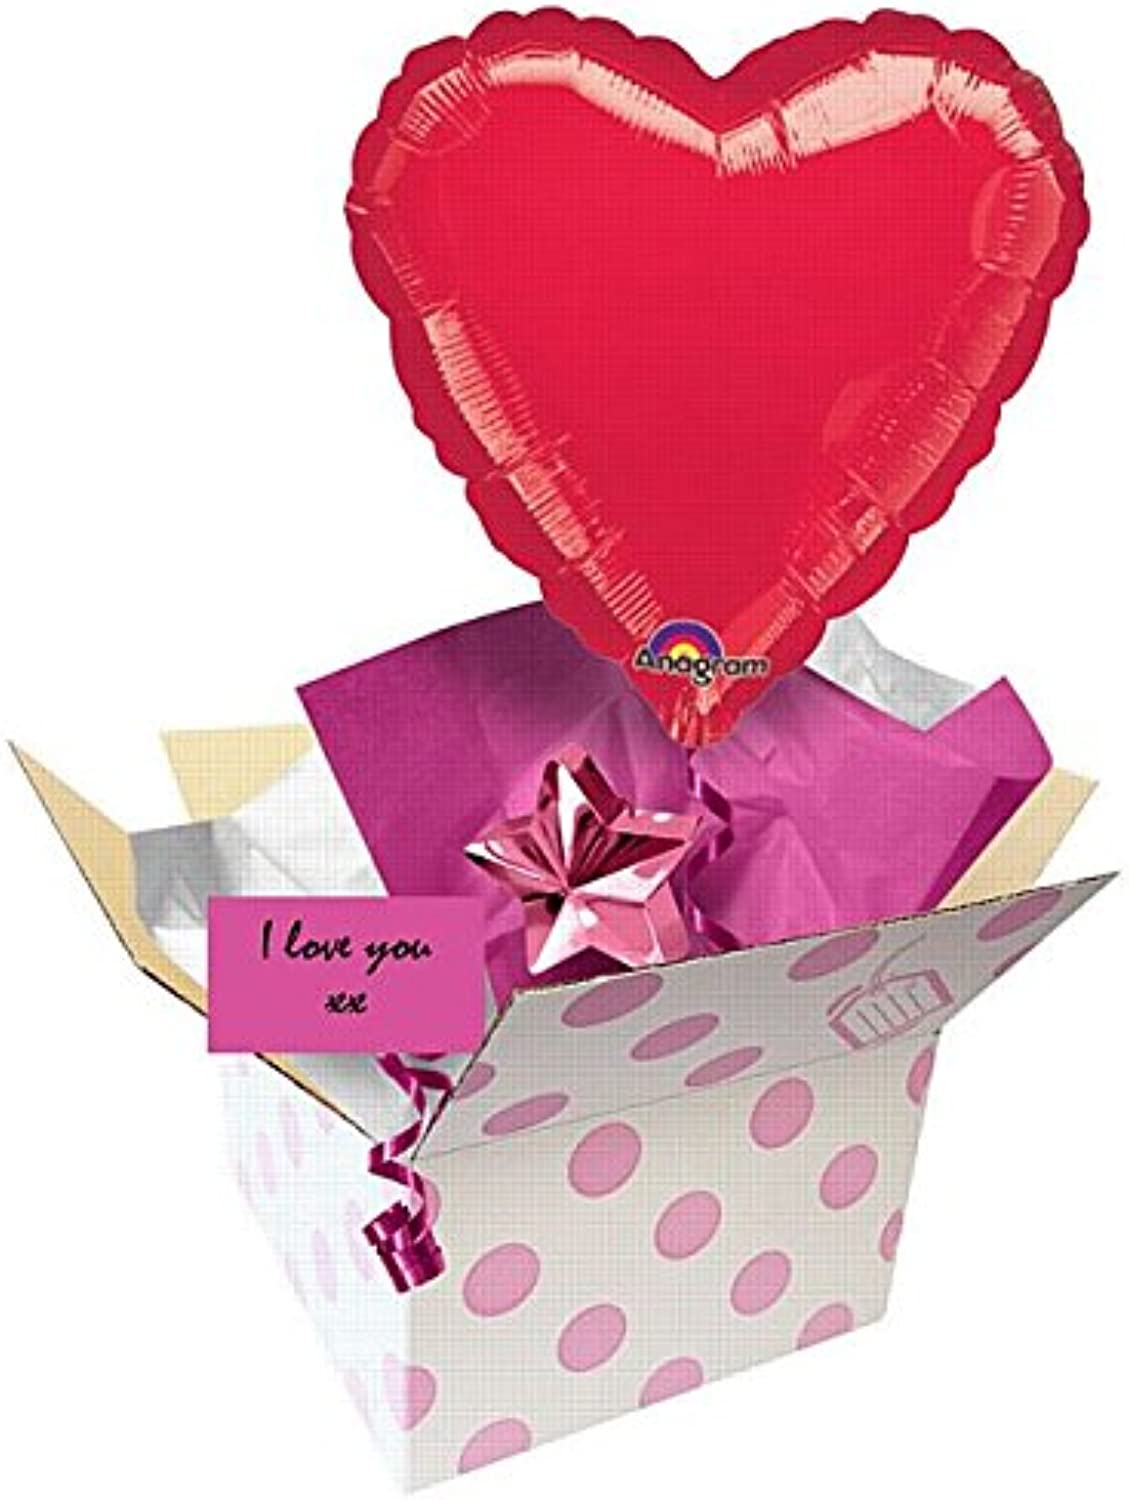 Zuffahome Balloon In A Box  Red Heart 18